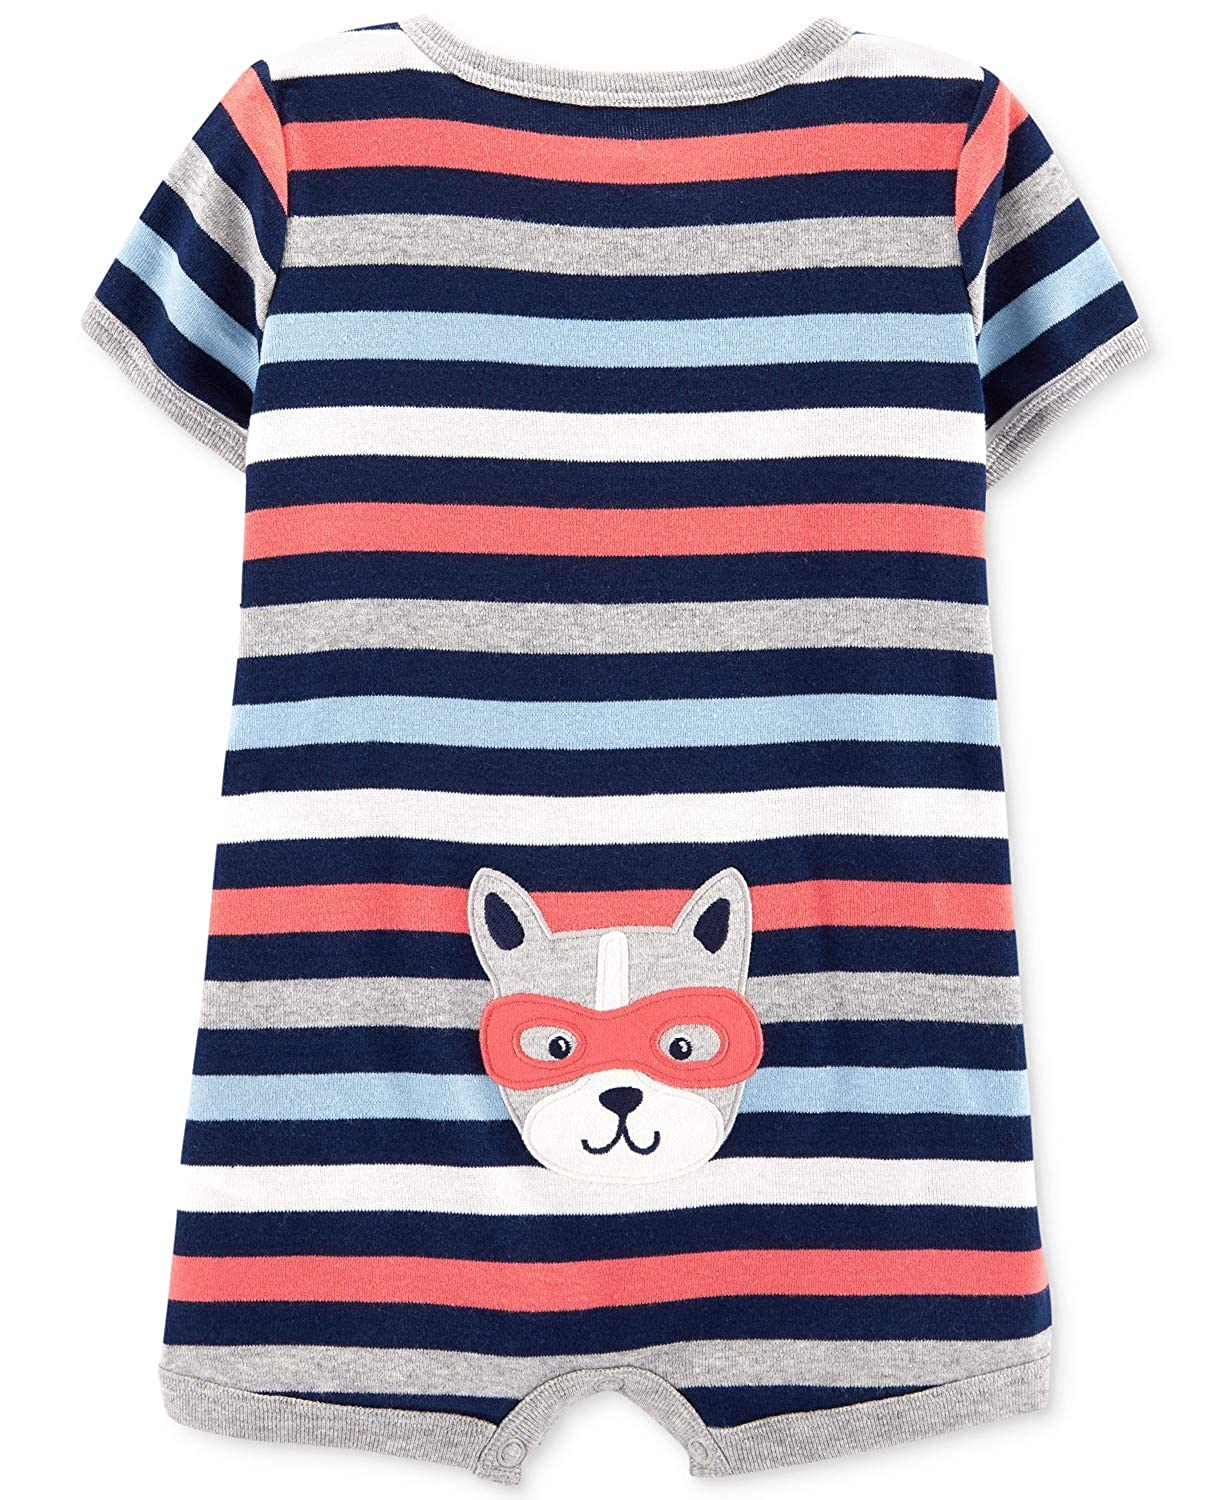 Navy Blue Multi Carters Baby Boys Striped Snap-Up Romper 24 Months